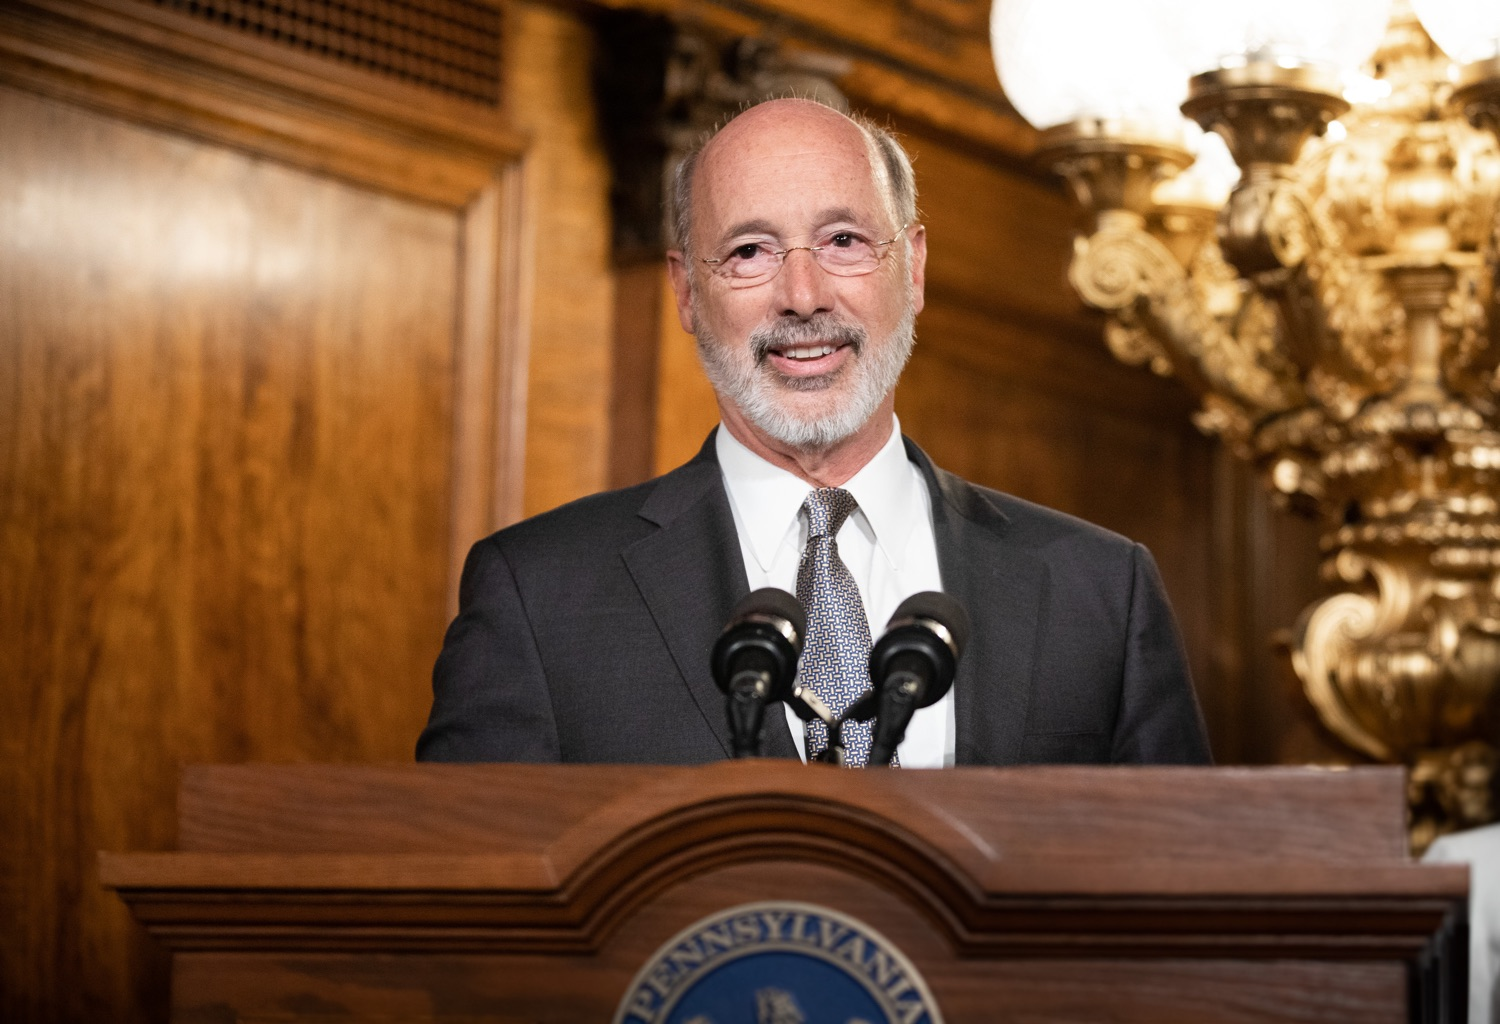 "<a href=""http://filesource.abacast.com/commonwealthofpa/photo/17554_gov_voter_reform_bill_dz_002.jpg"" target=""_blank"">⇣ Download Photo<br></a>Harrisburg, PA  Governor Tom Wolf speaks at the Election Reform Bill signing.  Governor Wolf made voting more convenient and secure by signing Act 77 of 2019, the most significant improvement to Pennsylvanias elections in more than 80 years. The bipartisan compromise legislation takes effect for the April 2020 primary election and makes Pennsylvania a national leader with voter-friendly election reforms."